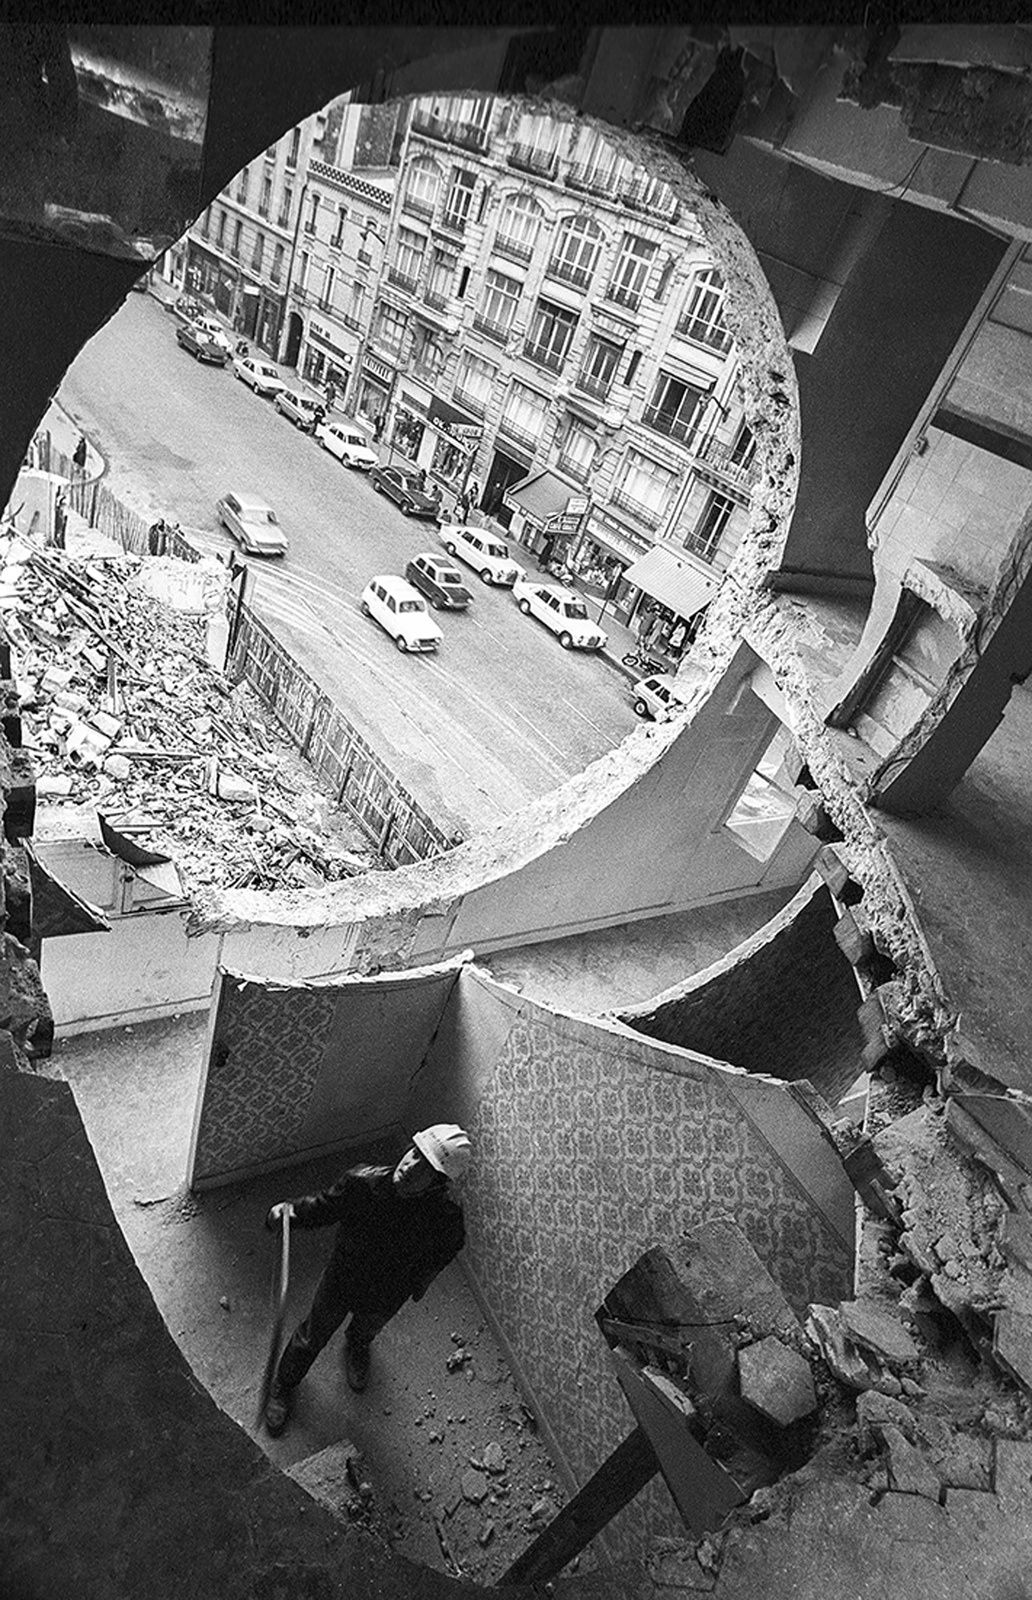 """Gordon Matta-Clark travaillant à Conical Intersect"", 1975 de Gordon MATTA-CLARK - Courtesy de l'Artiste"